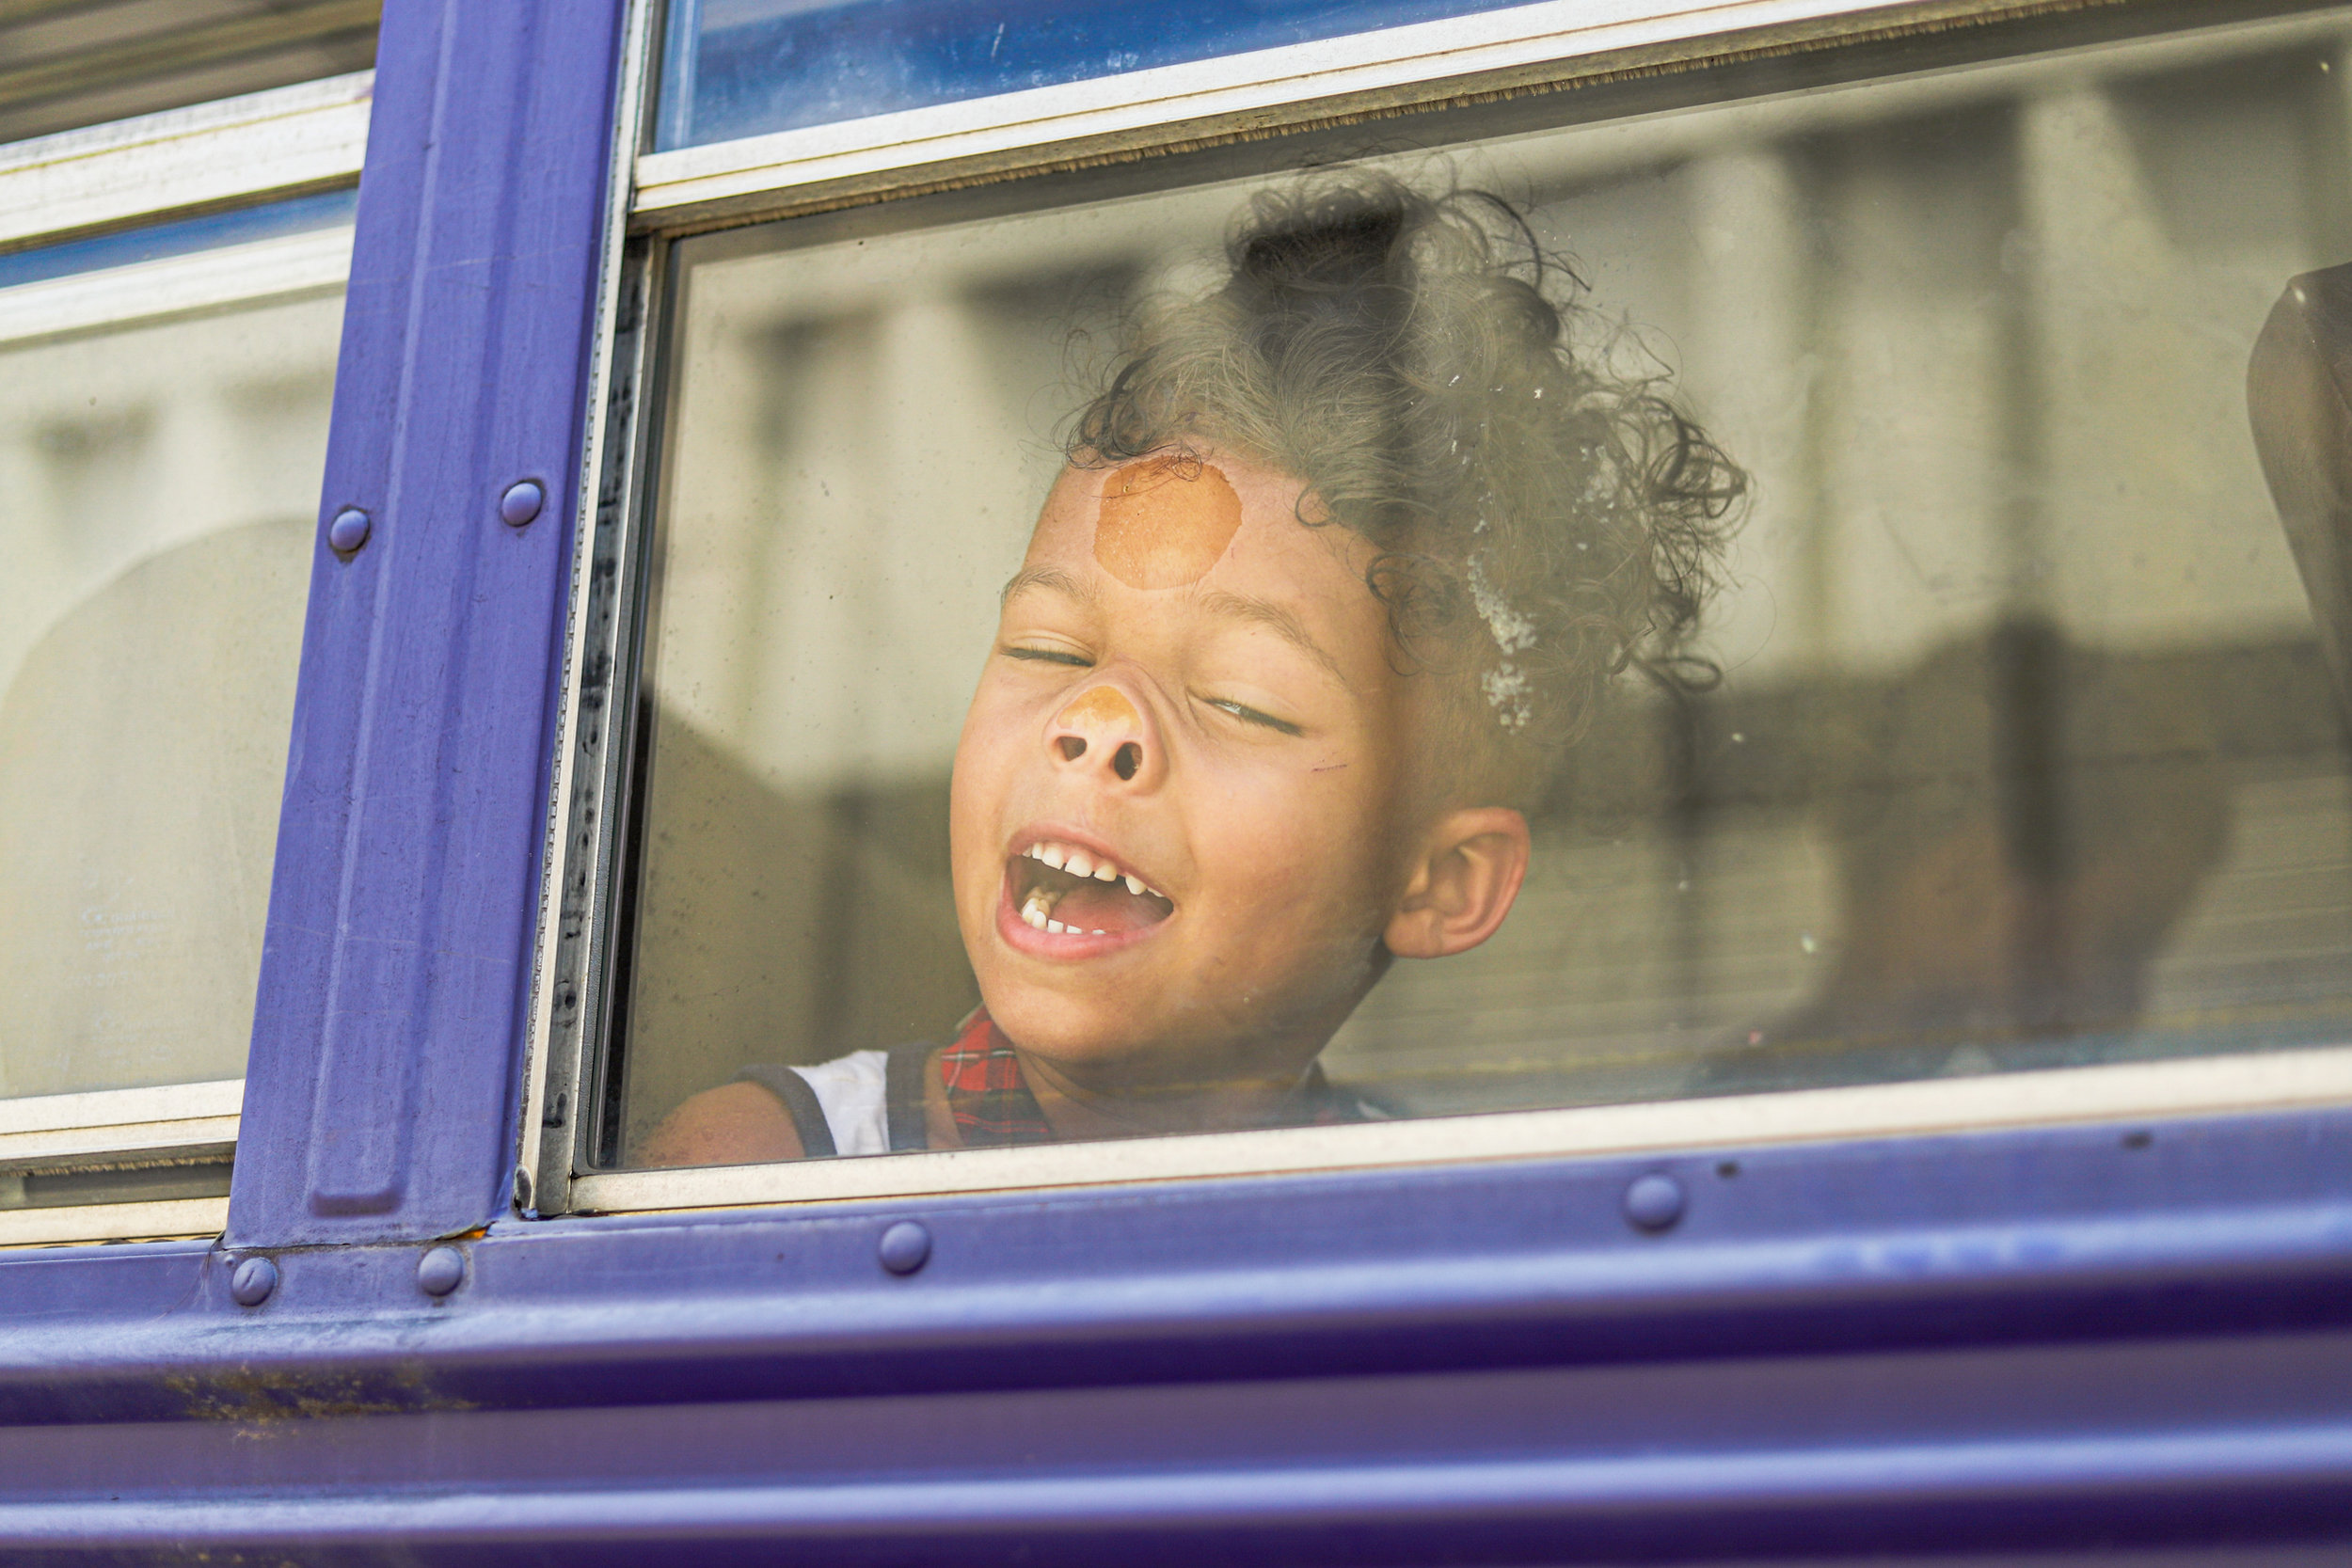 A child presses his face against the glass window of the bus headed to lunch during the YouthWorks Summer Leadership Camp, a summer learning program for at-risk kids, held at Wesley Chapel in Tulsa, Oklahoma on July 8, 2019.